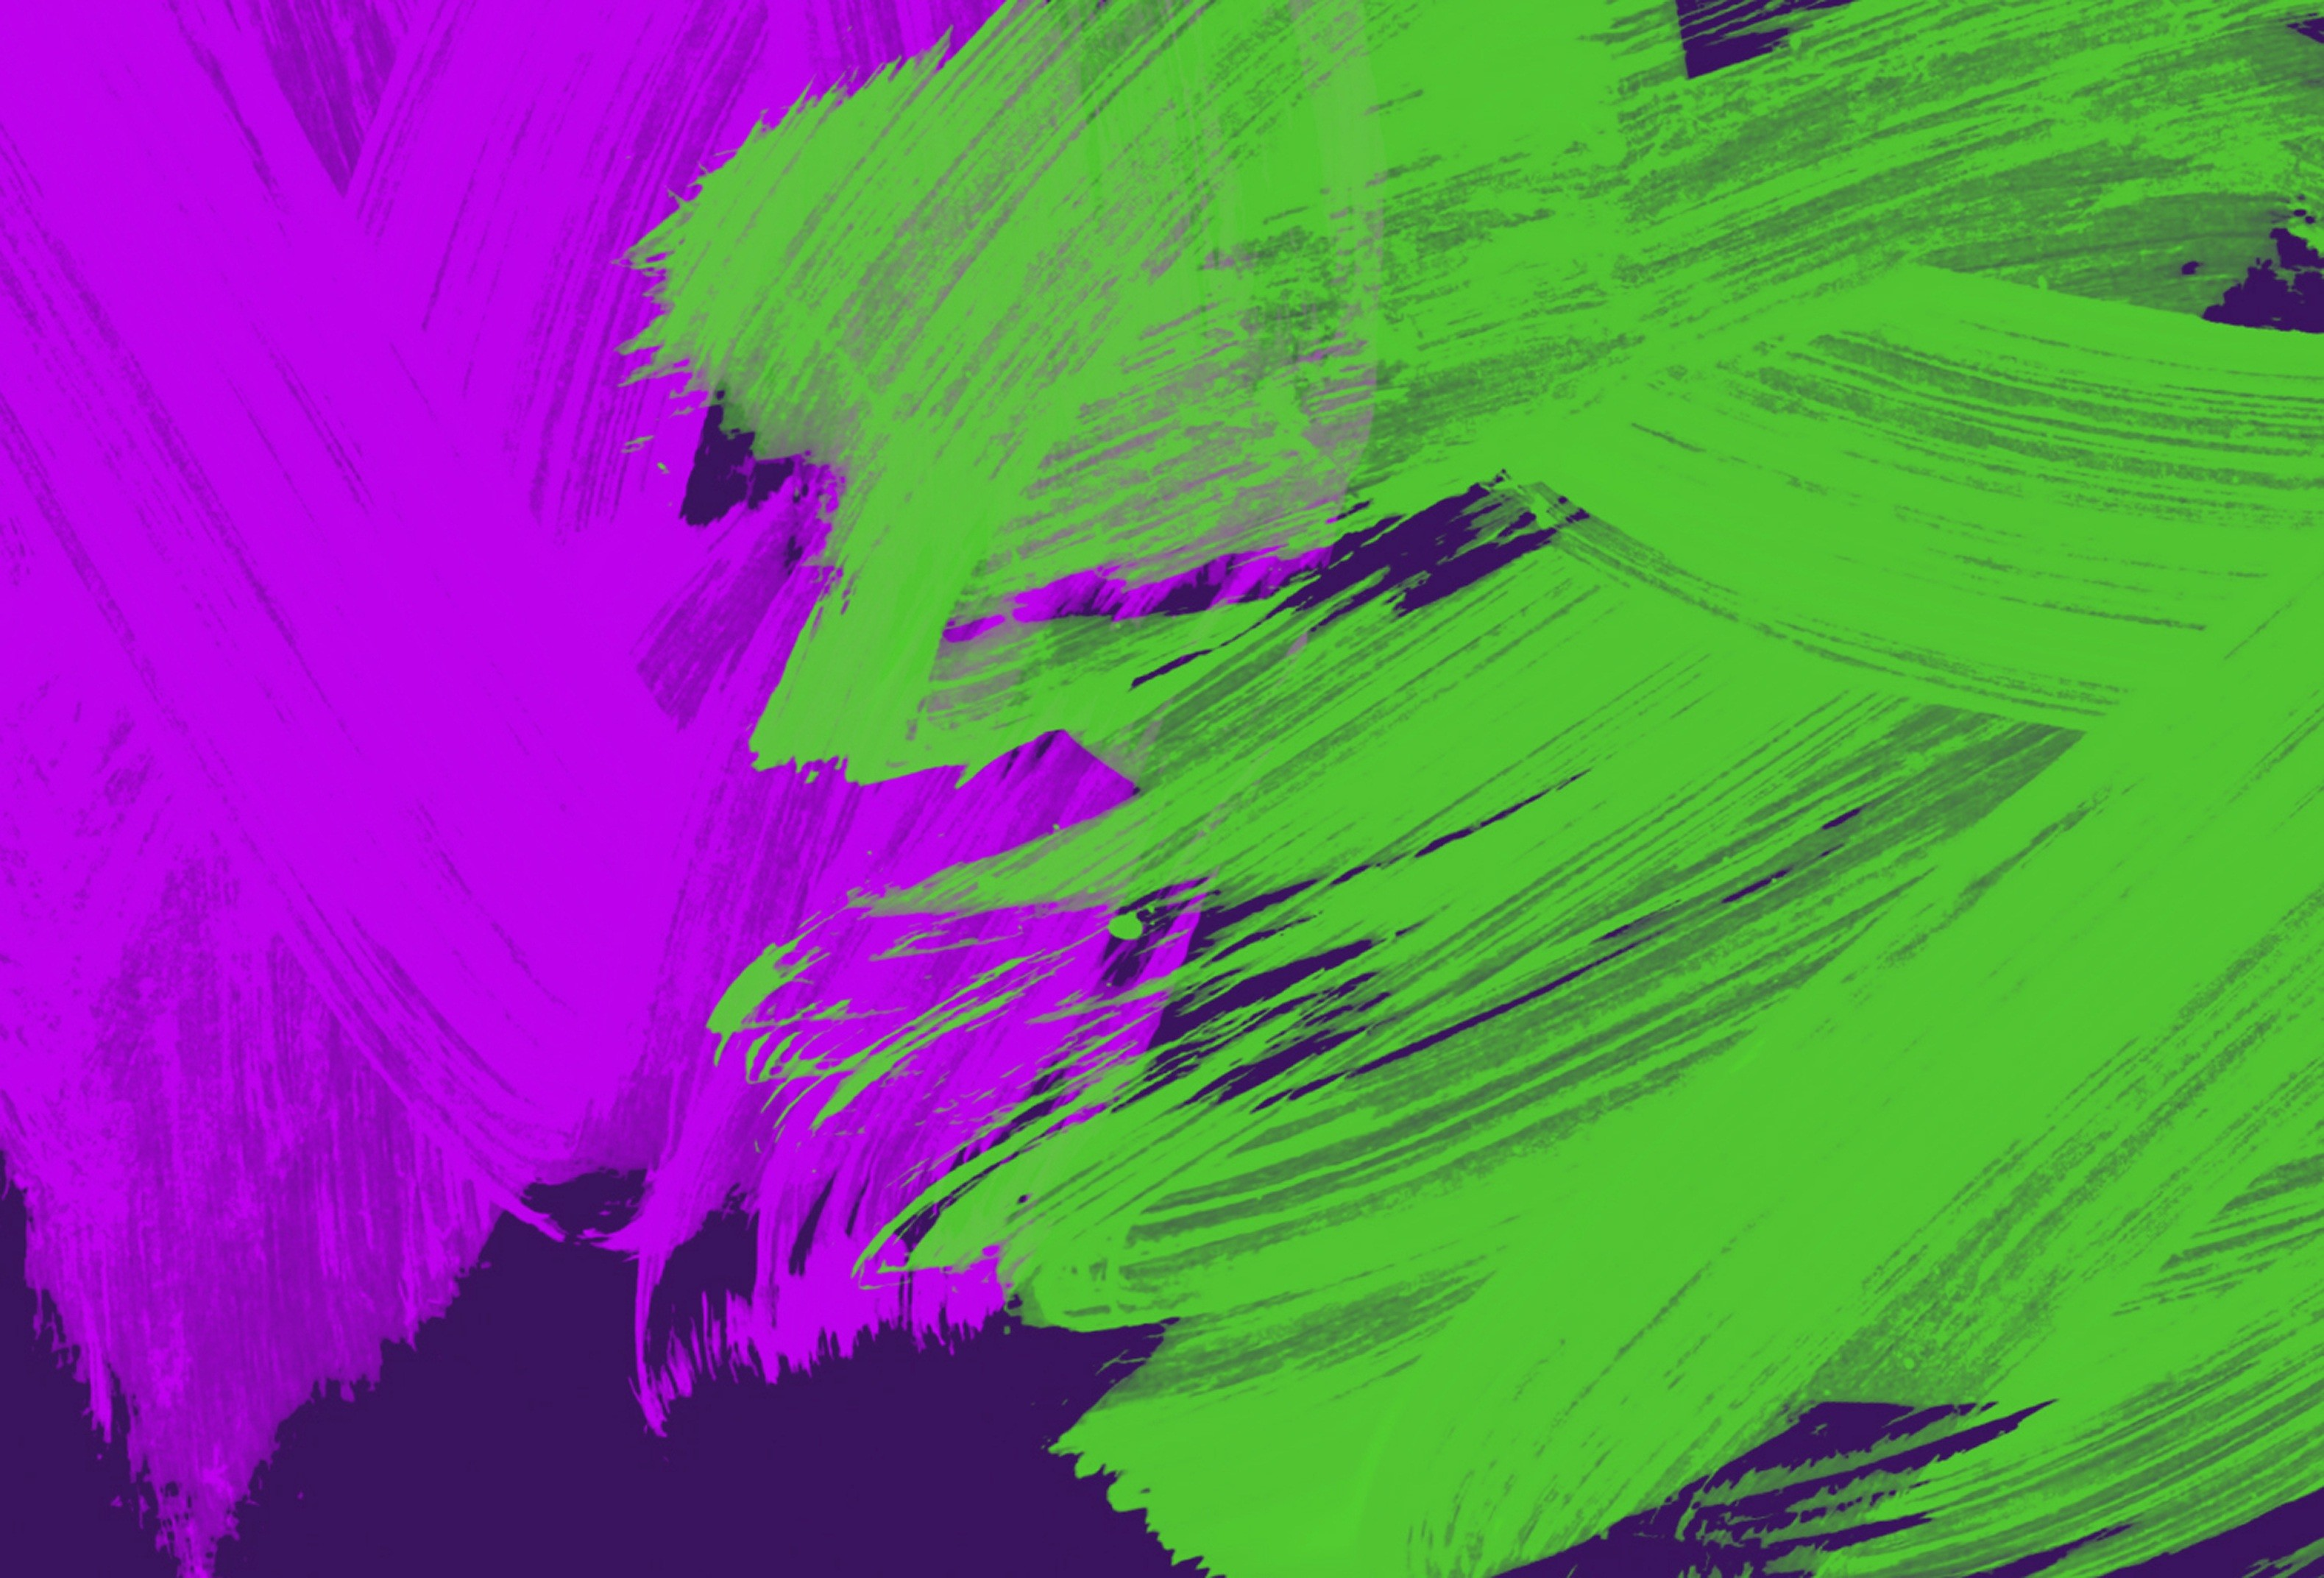 3158x2144 background with neon purple and green touches